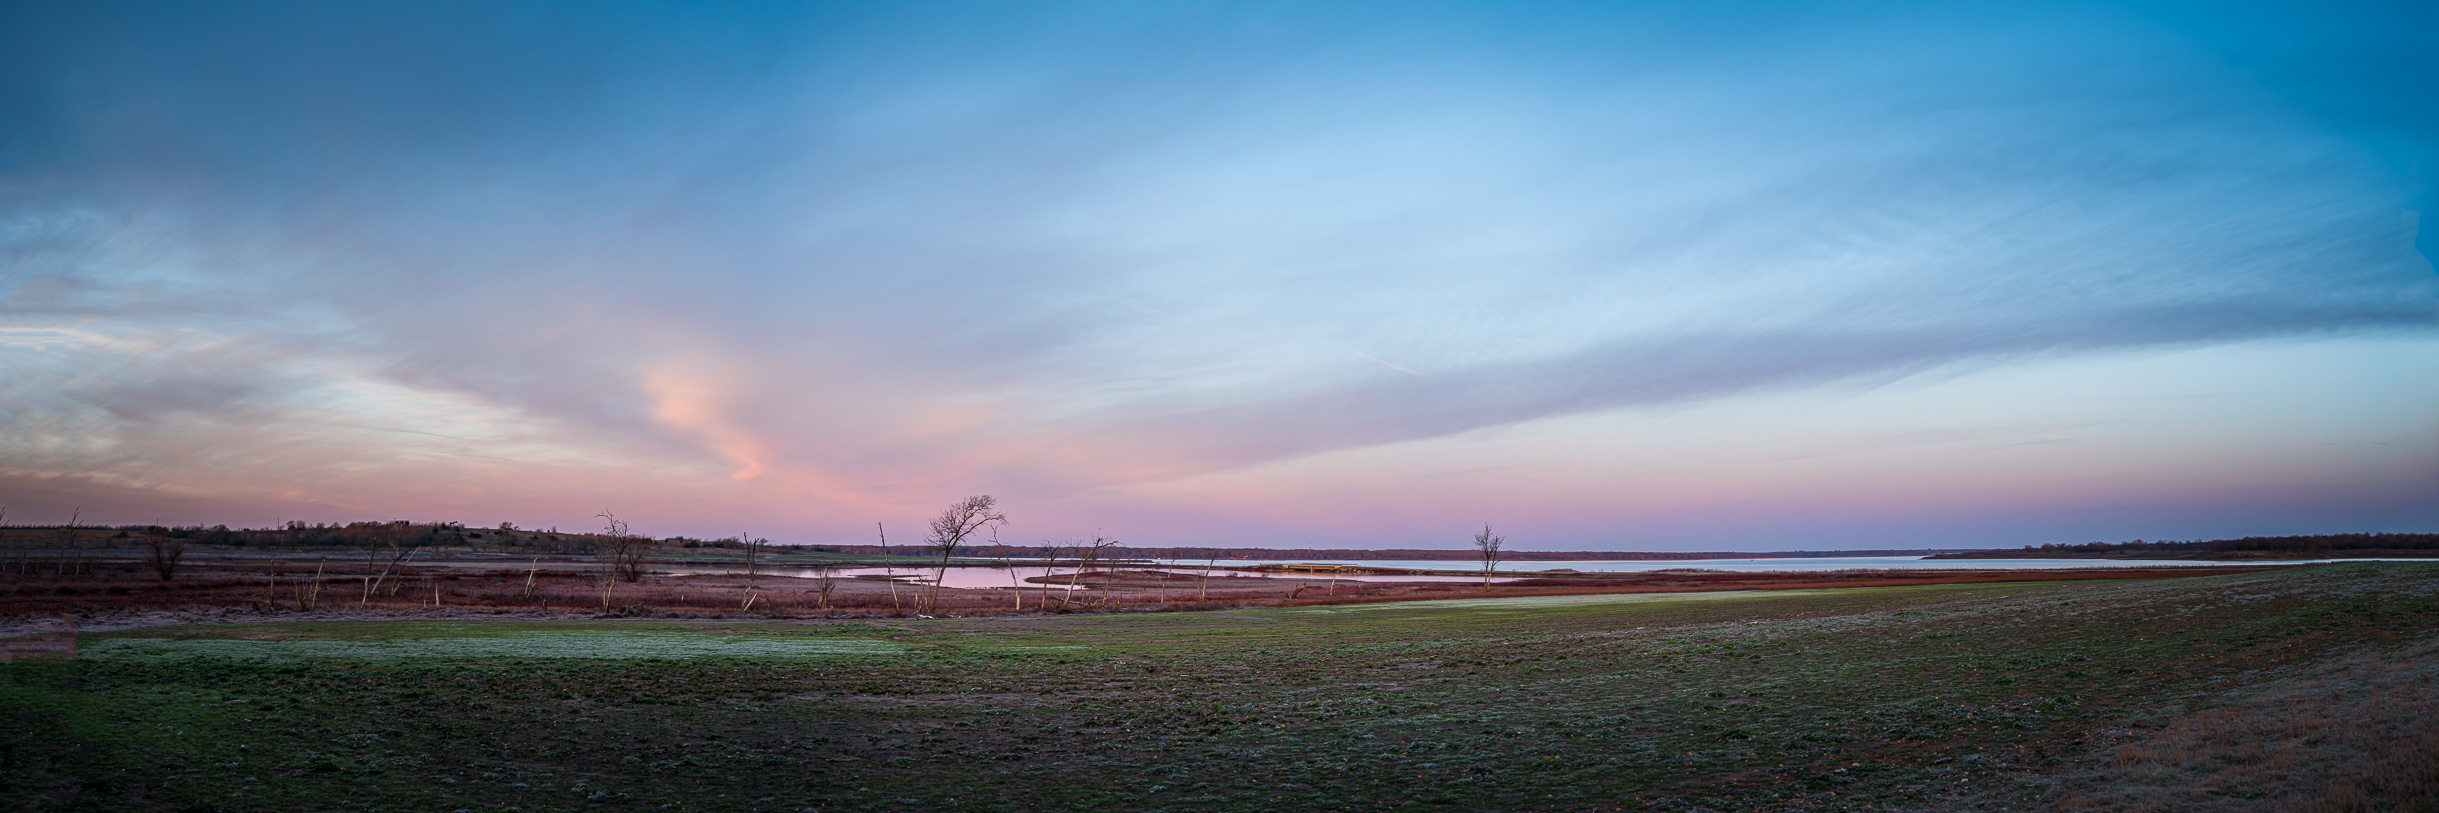 North Texas' Hagerman National Wildlife Refuge stretches into the distance.